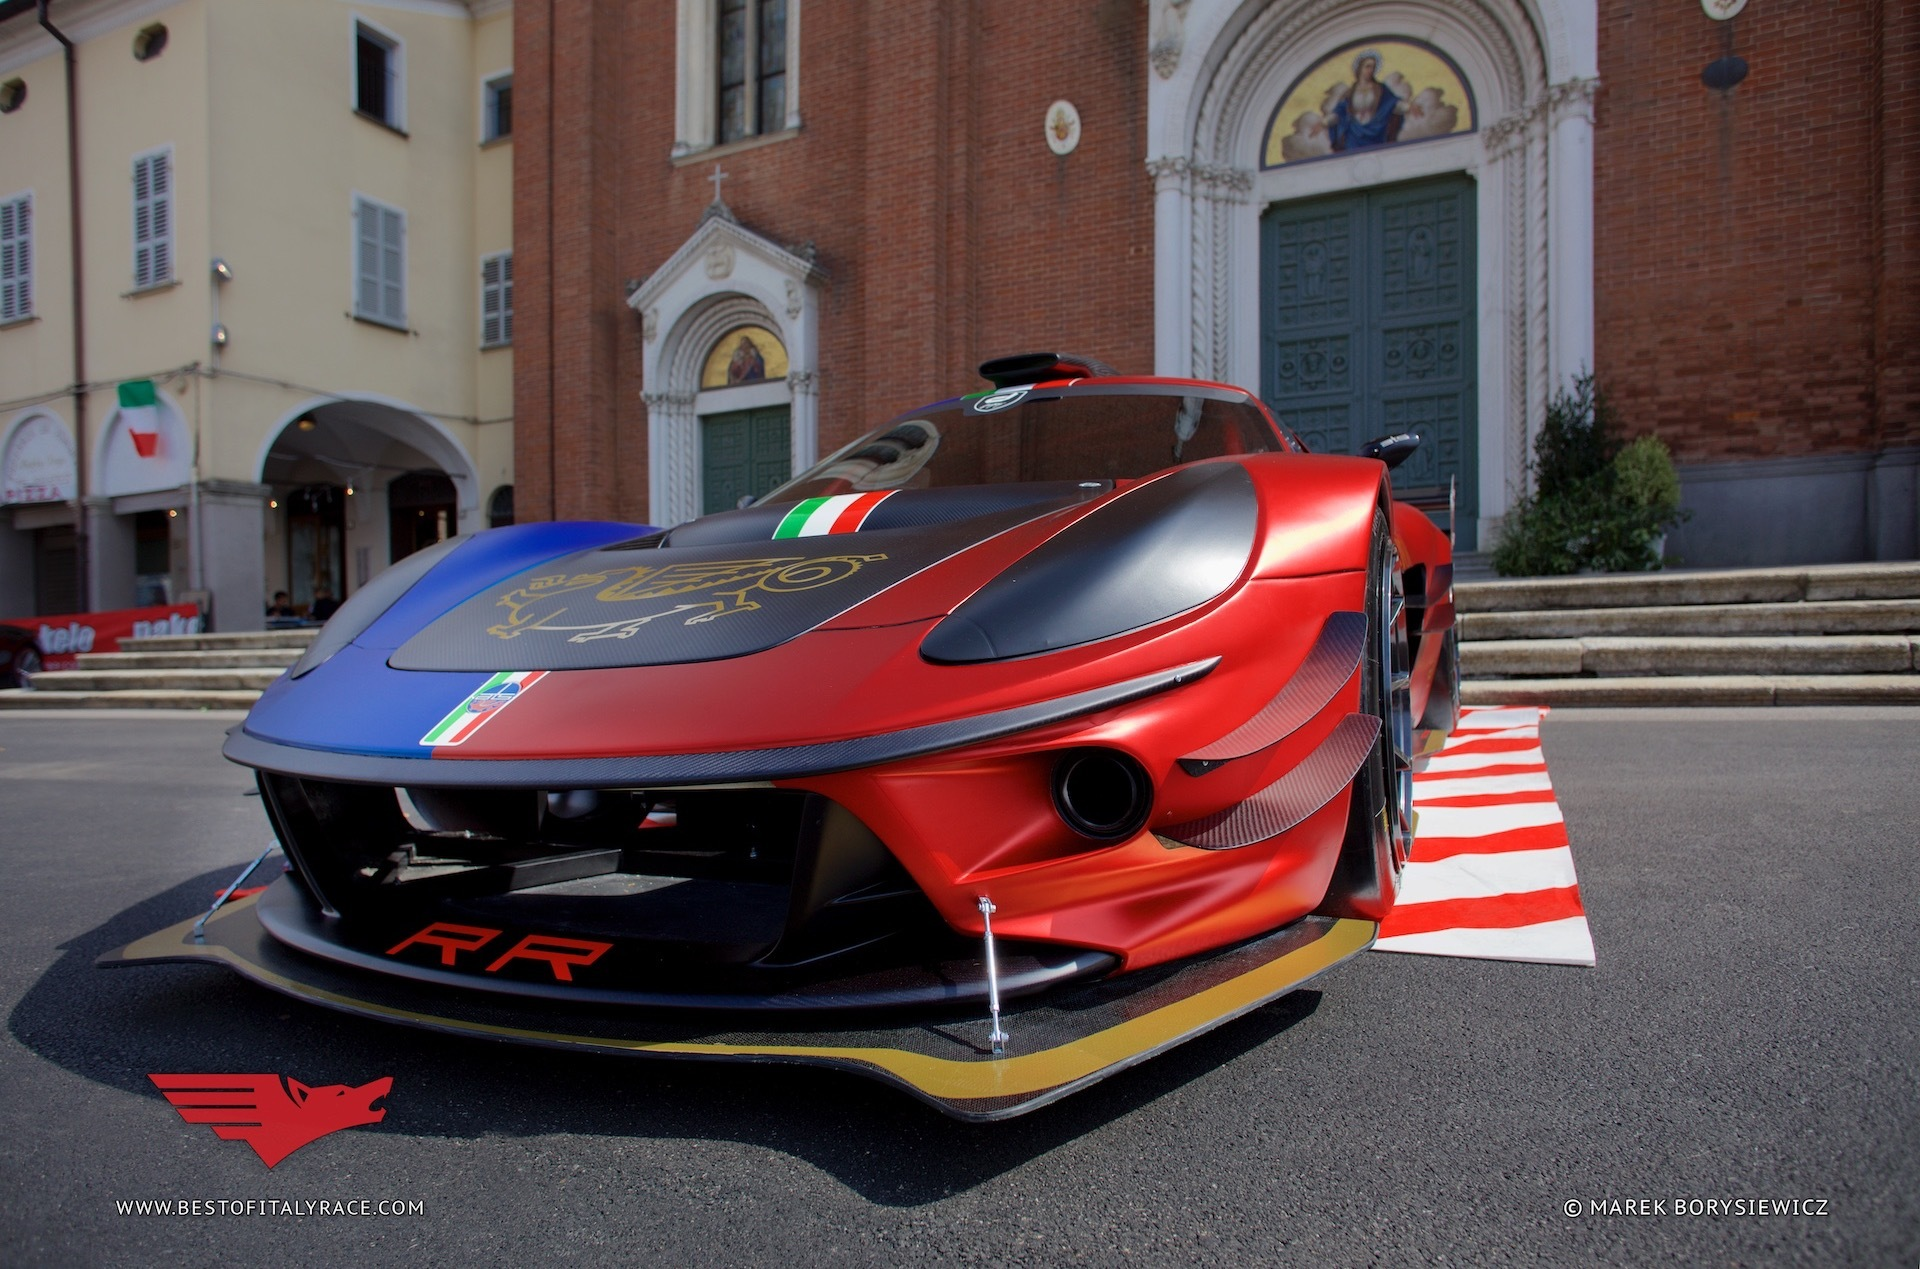 ATS Automobili, a niche car manufacturer headquartered in Italy, has unveiled its newest racing supercar called the RR Turbo. The novelty complies with the FIA standards and costs €110,000.